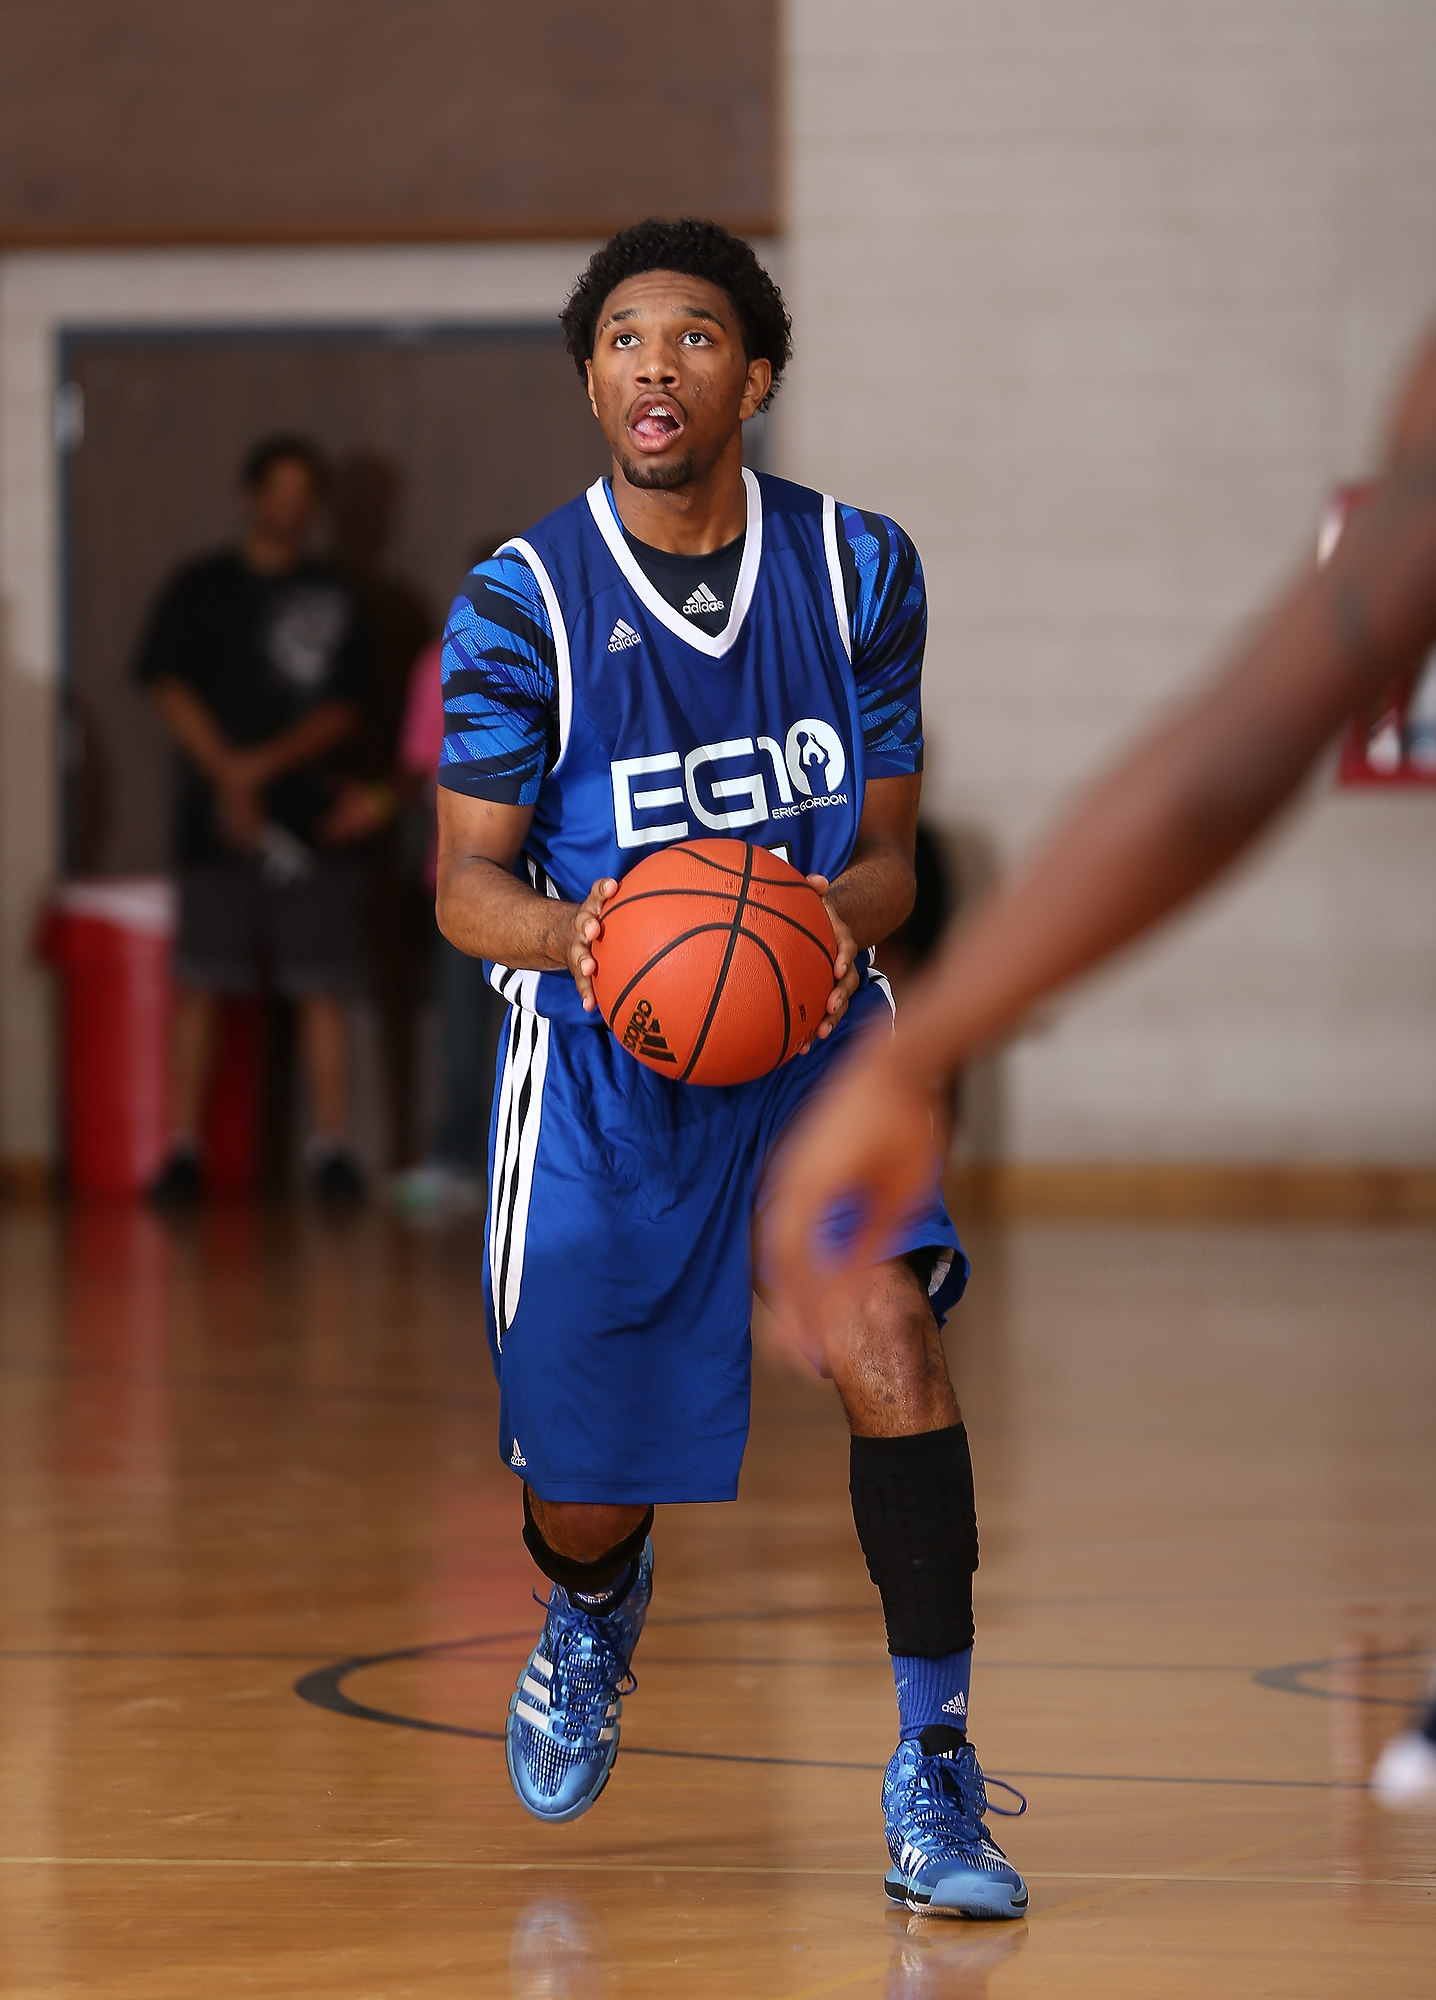 Eron Gordon at 2013 adidas Invitational